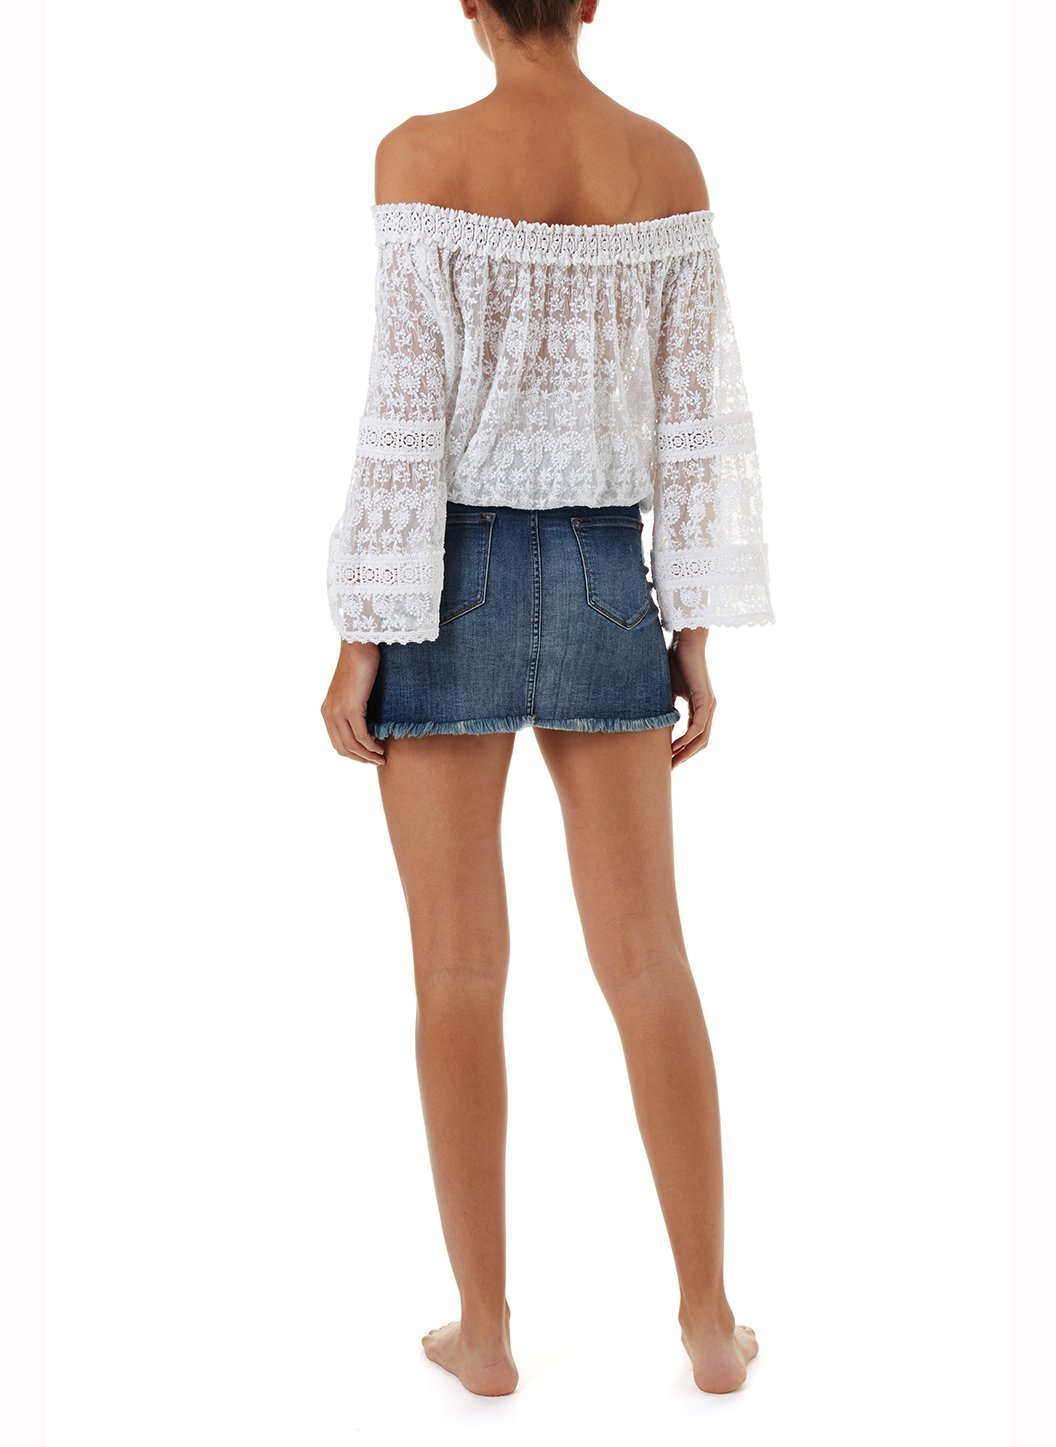 gia white textured offtheshoulder top 2019 B